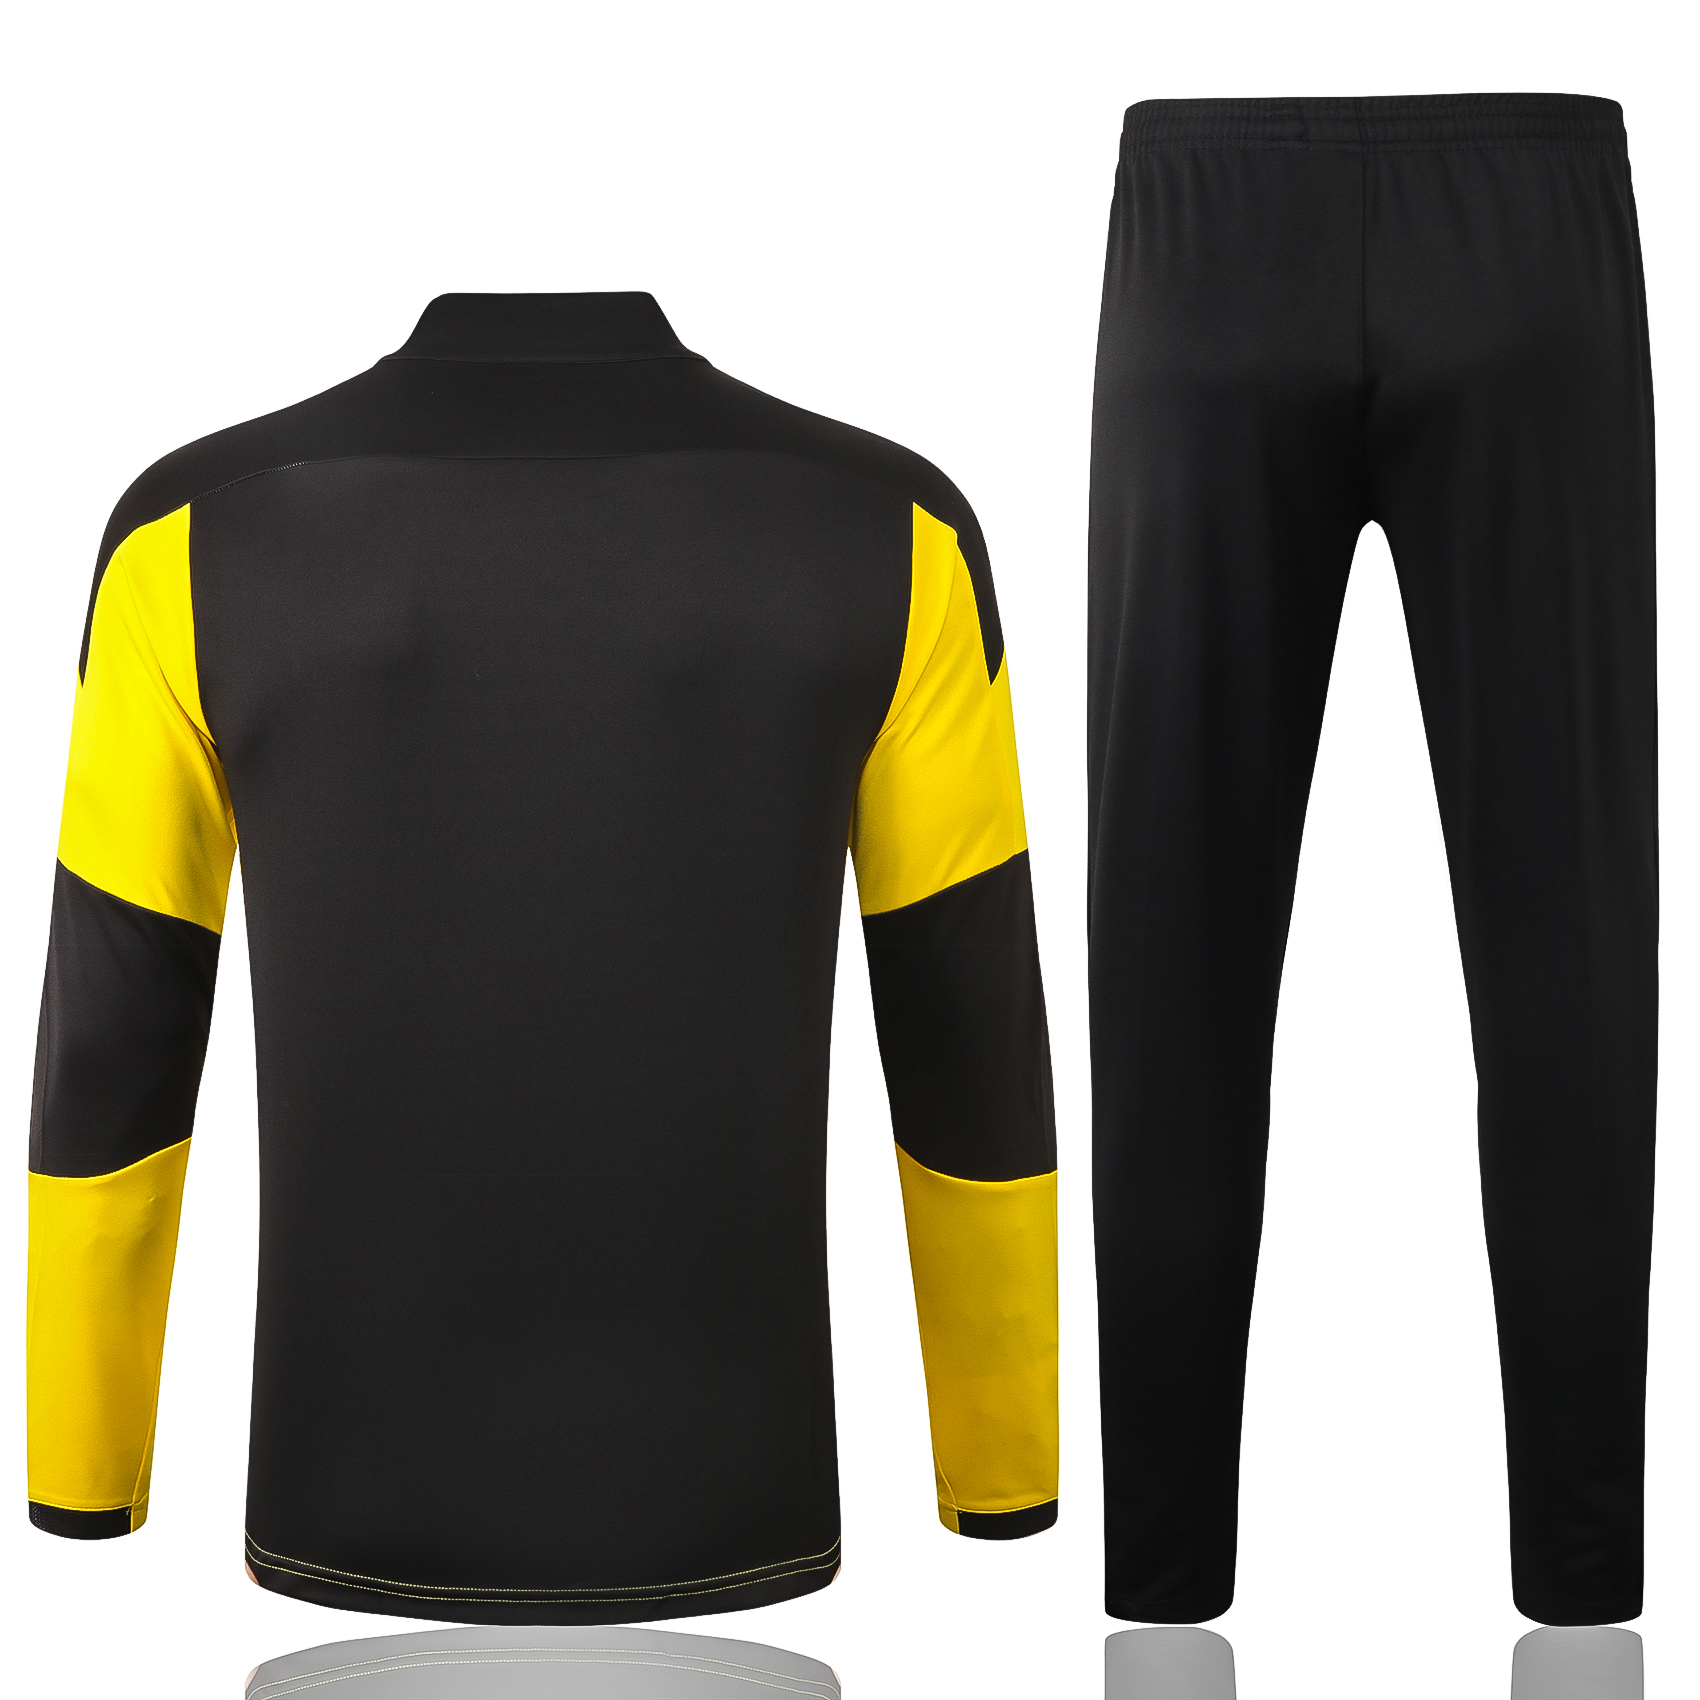 20-21-dortmund-yellow-sweater-set-443.jpg